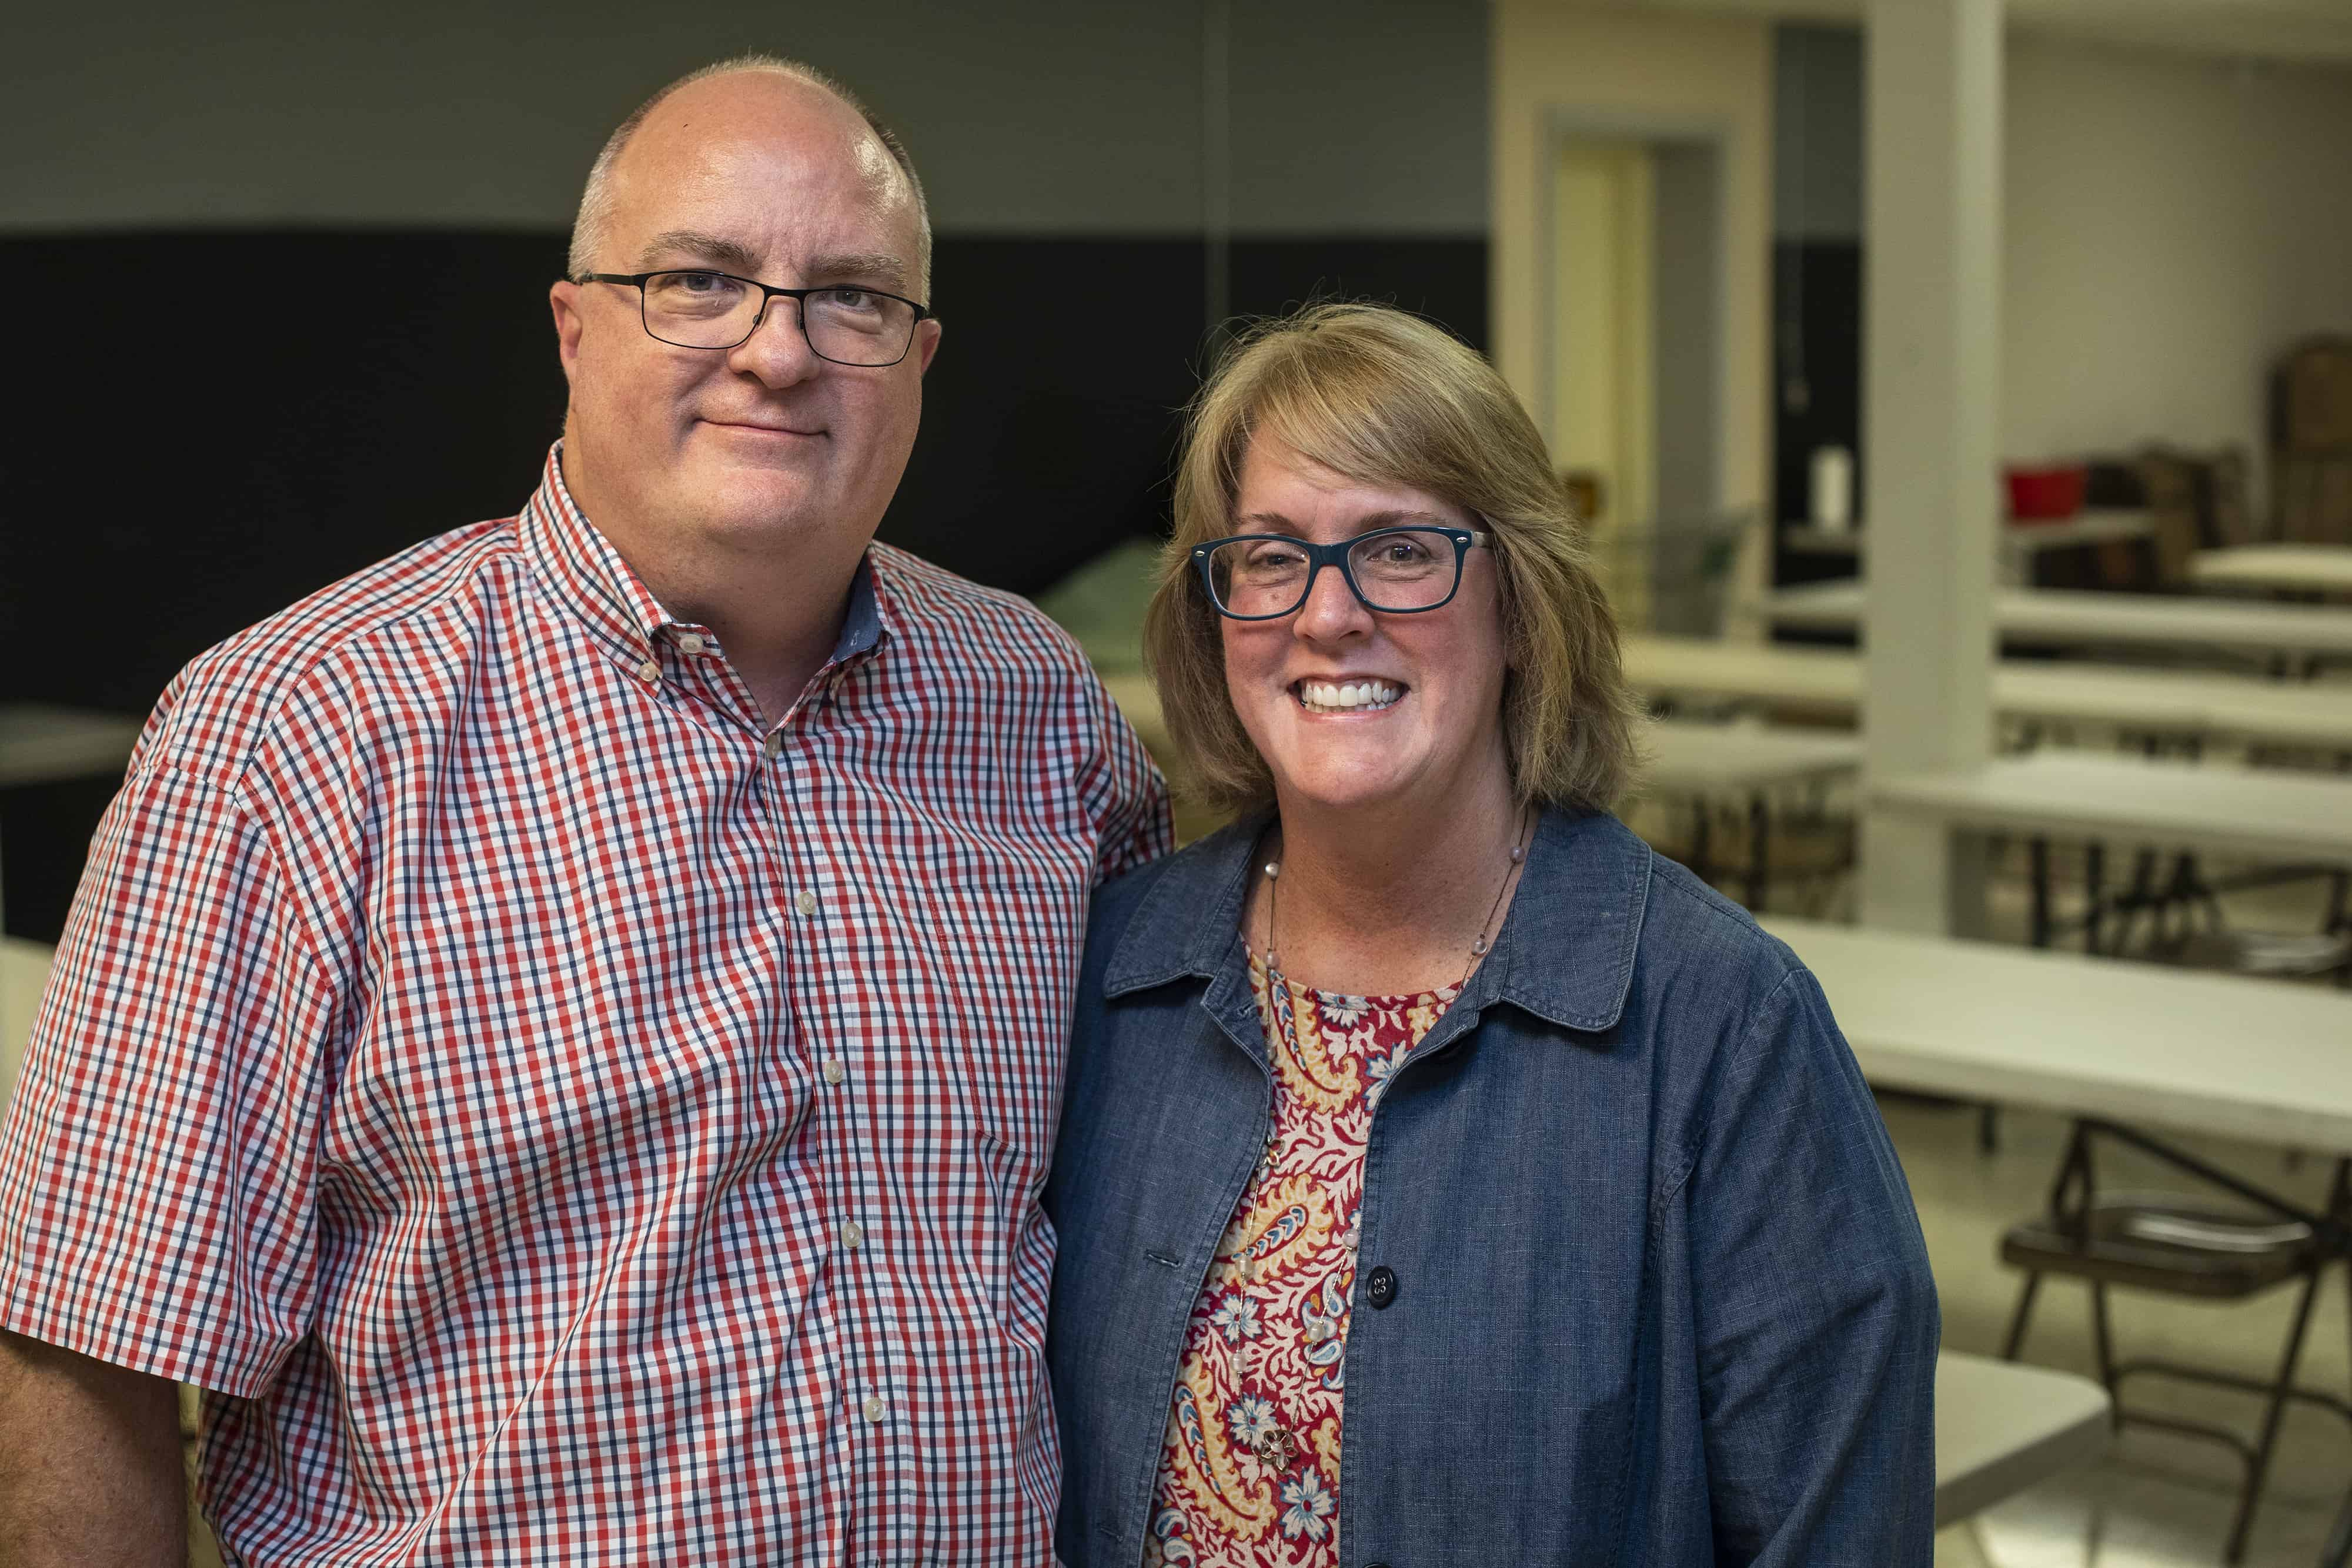 LifePath Christian Ministries welcomes new CEO, Norman Humber 3